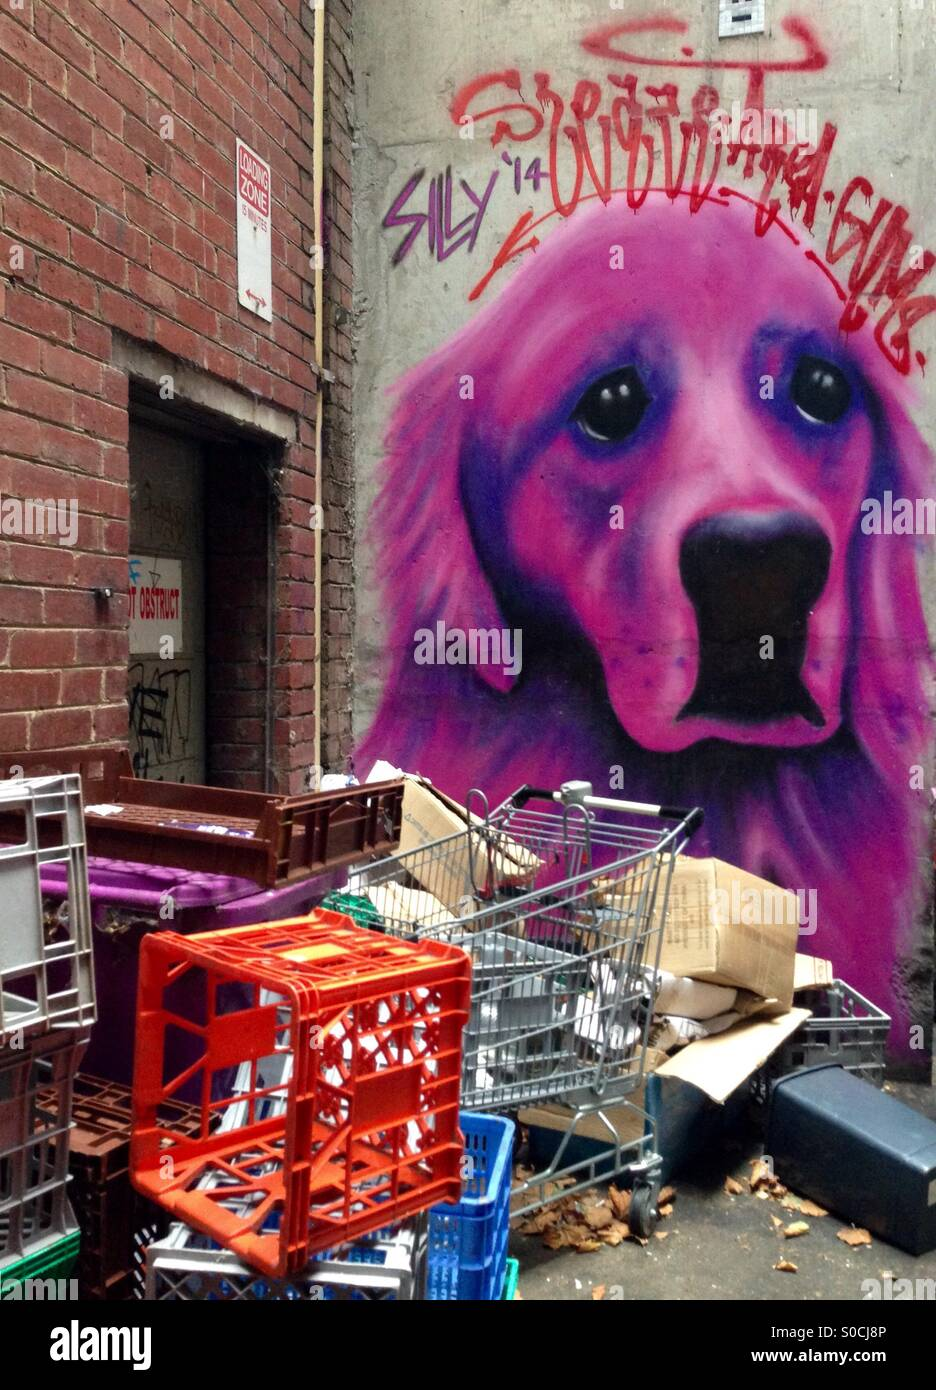 Street art of golden retriever dog with rubbish including shopping trolley milk crates  in city lane - Stock Image